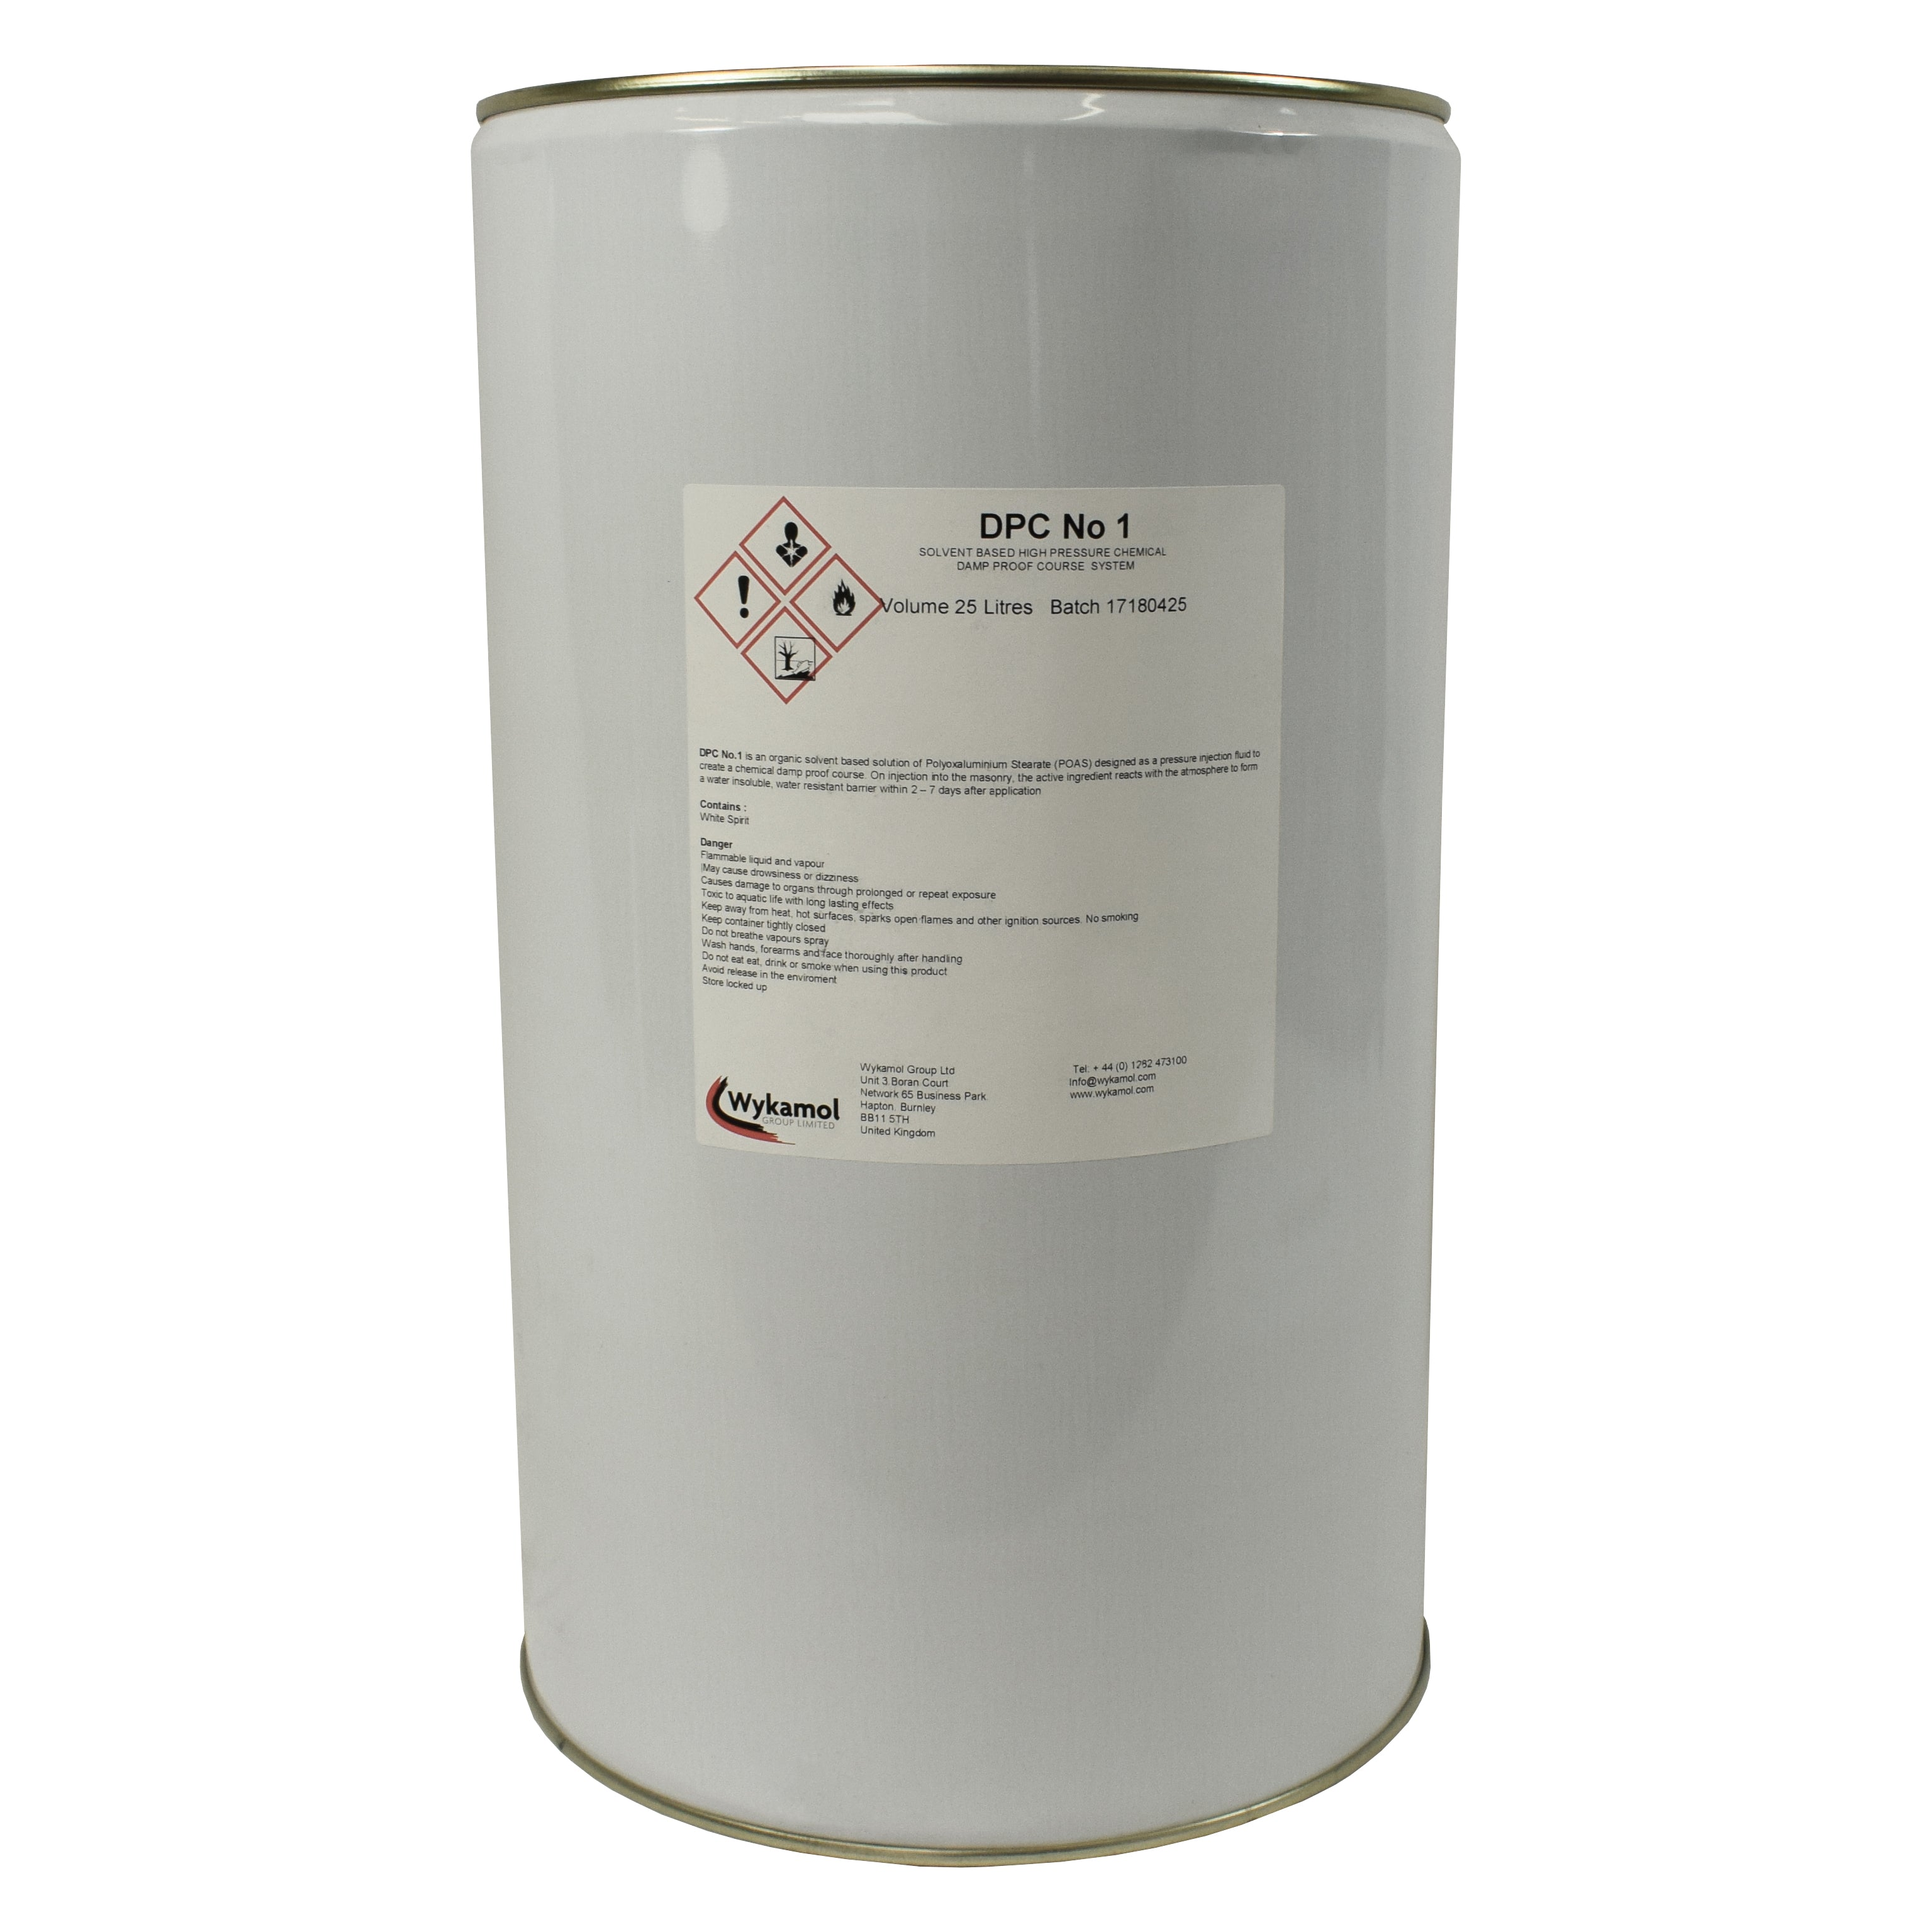 Damp Proofing Injection Fluid Dpc No 1 Solvent Based Treatment